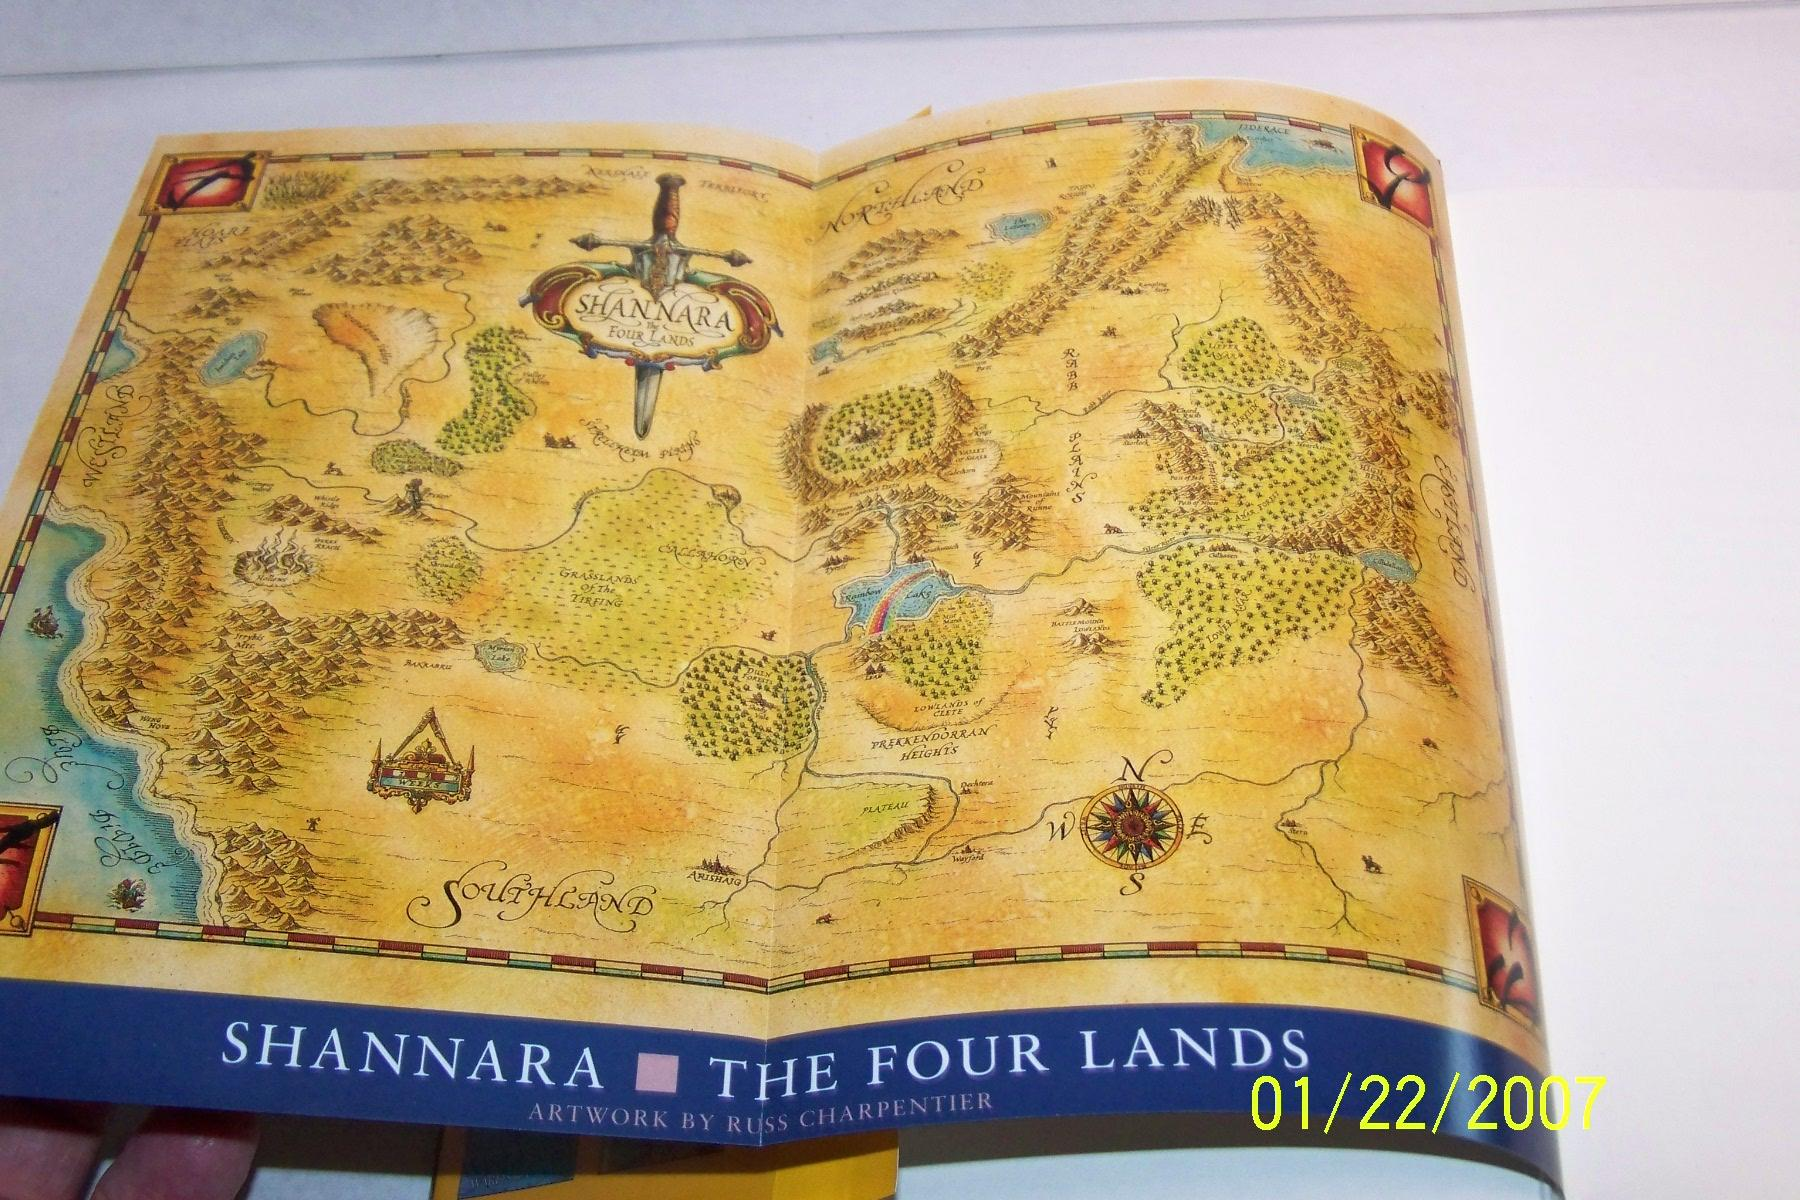 The Dark Legacy Of Shannara Witch Wraith By Terry Brooks